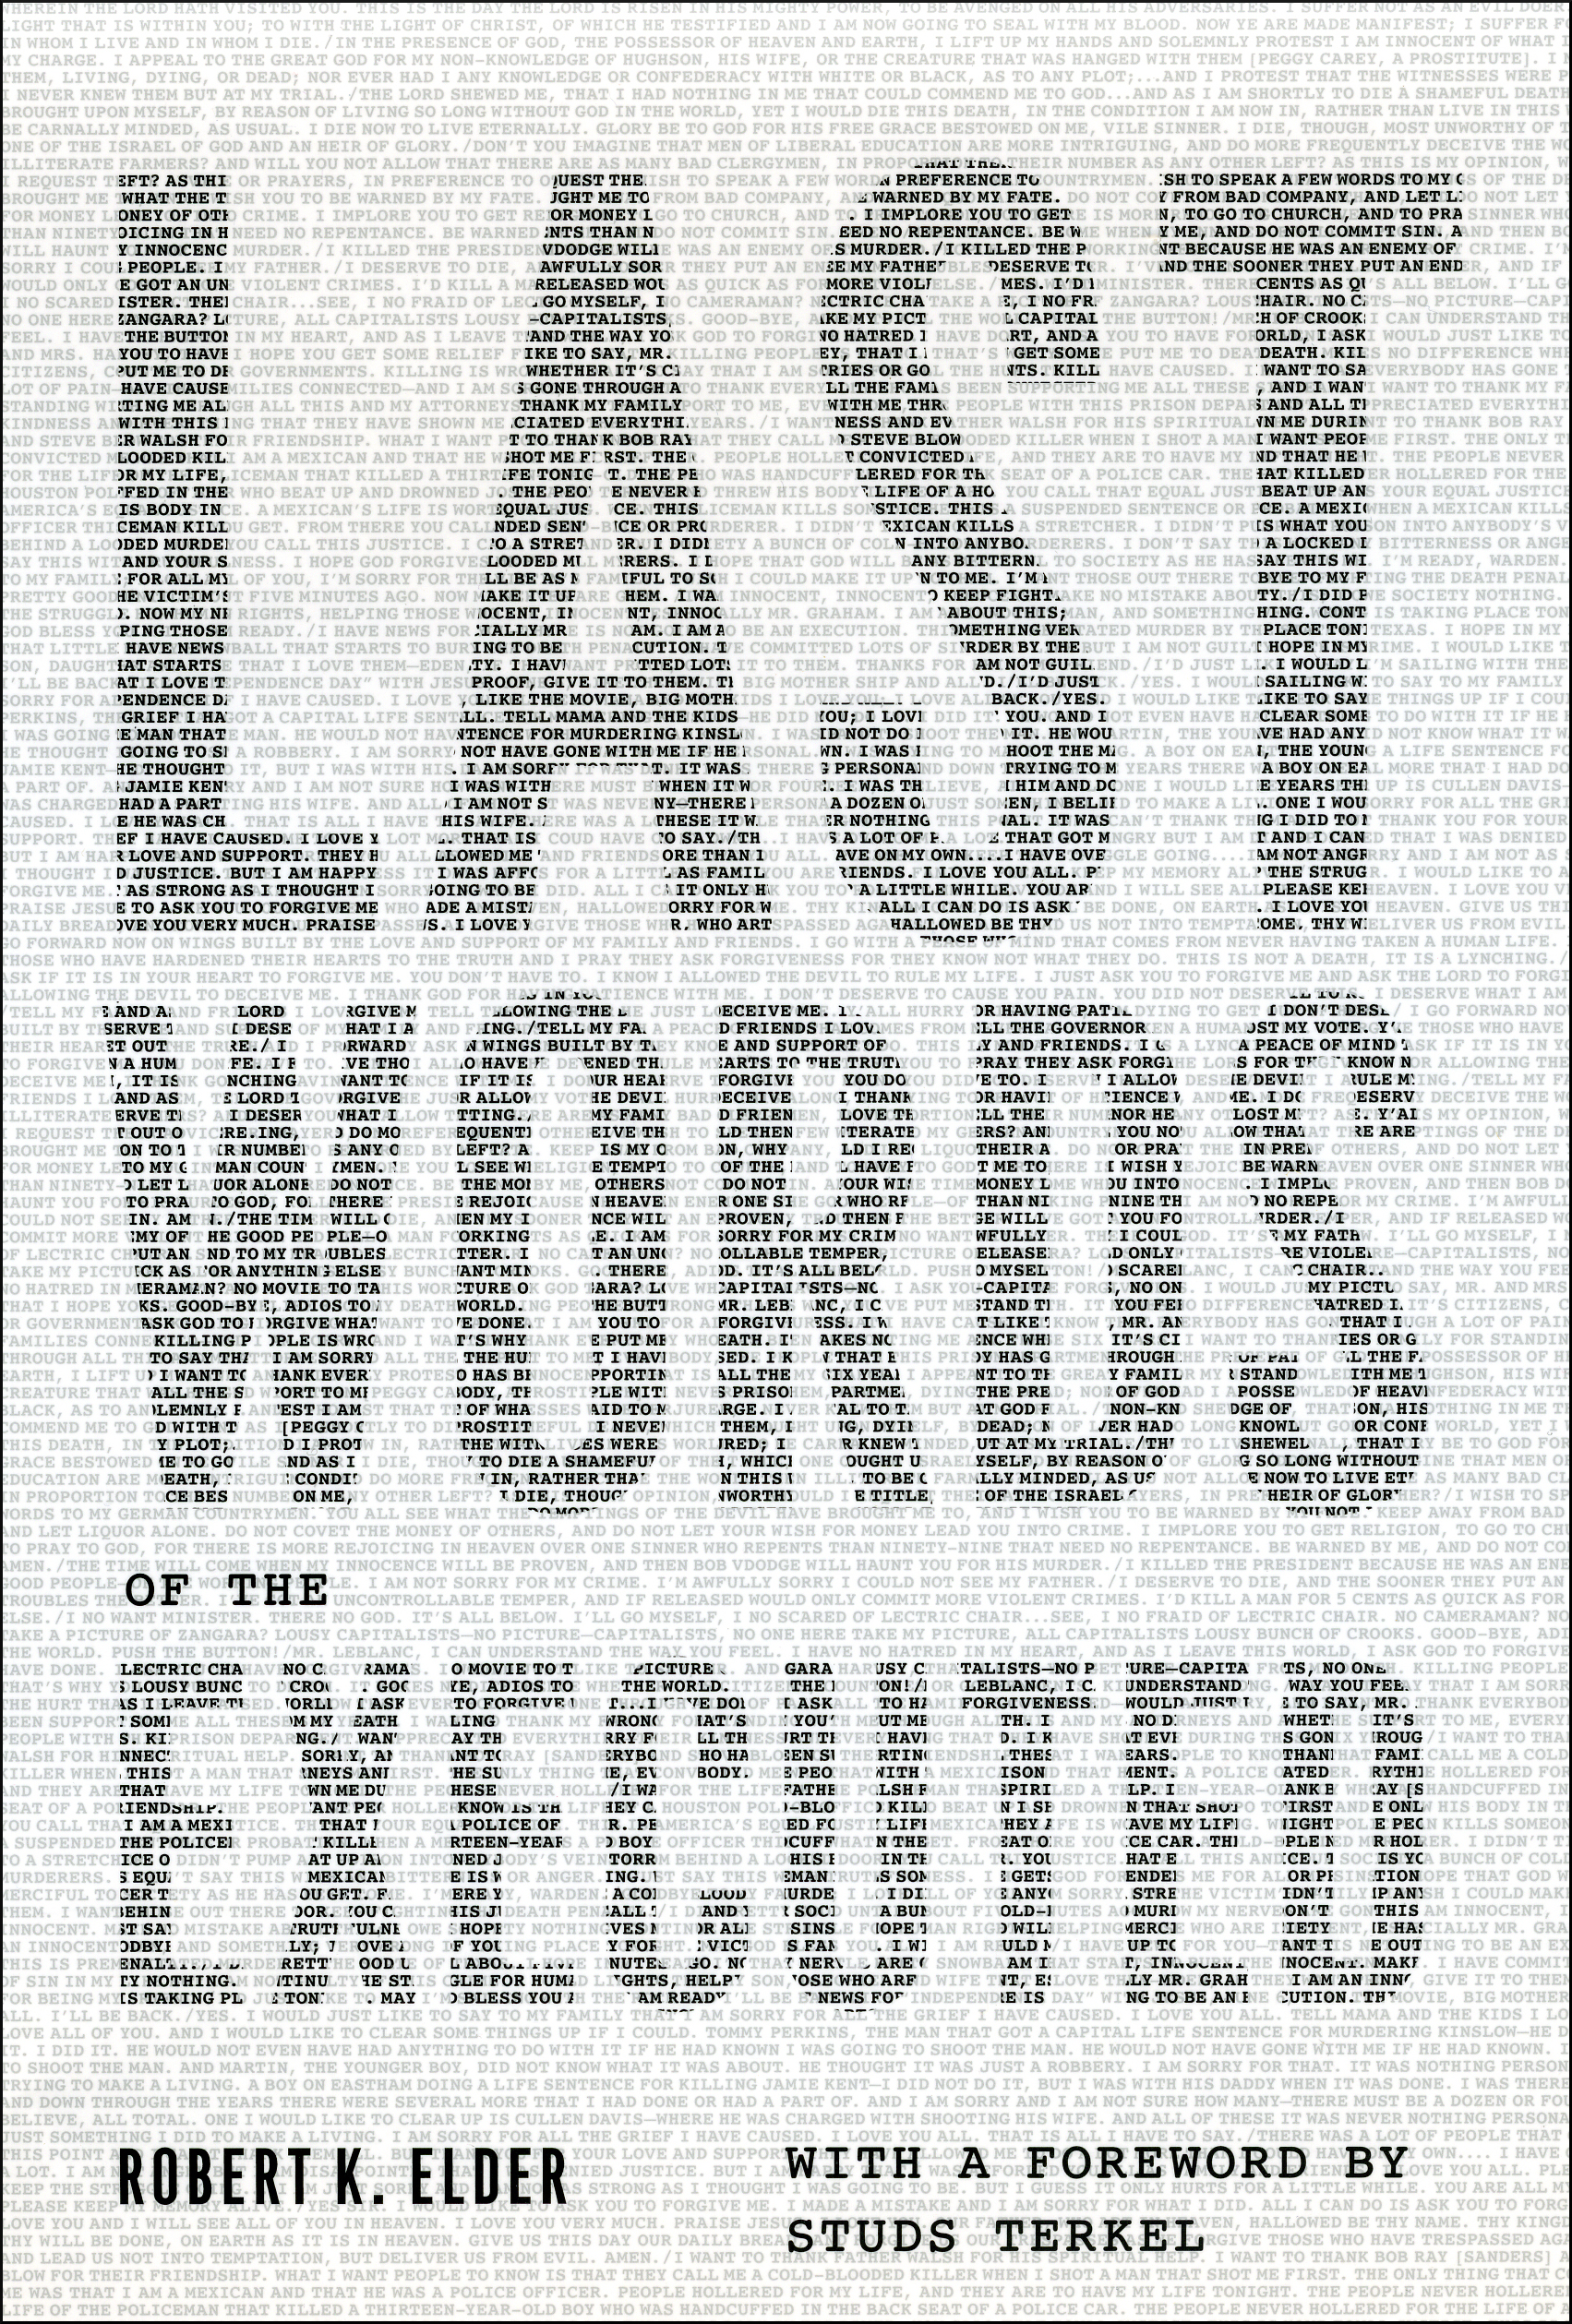 Interview with Robert K. Elder, author of Last Words of the Executed